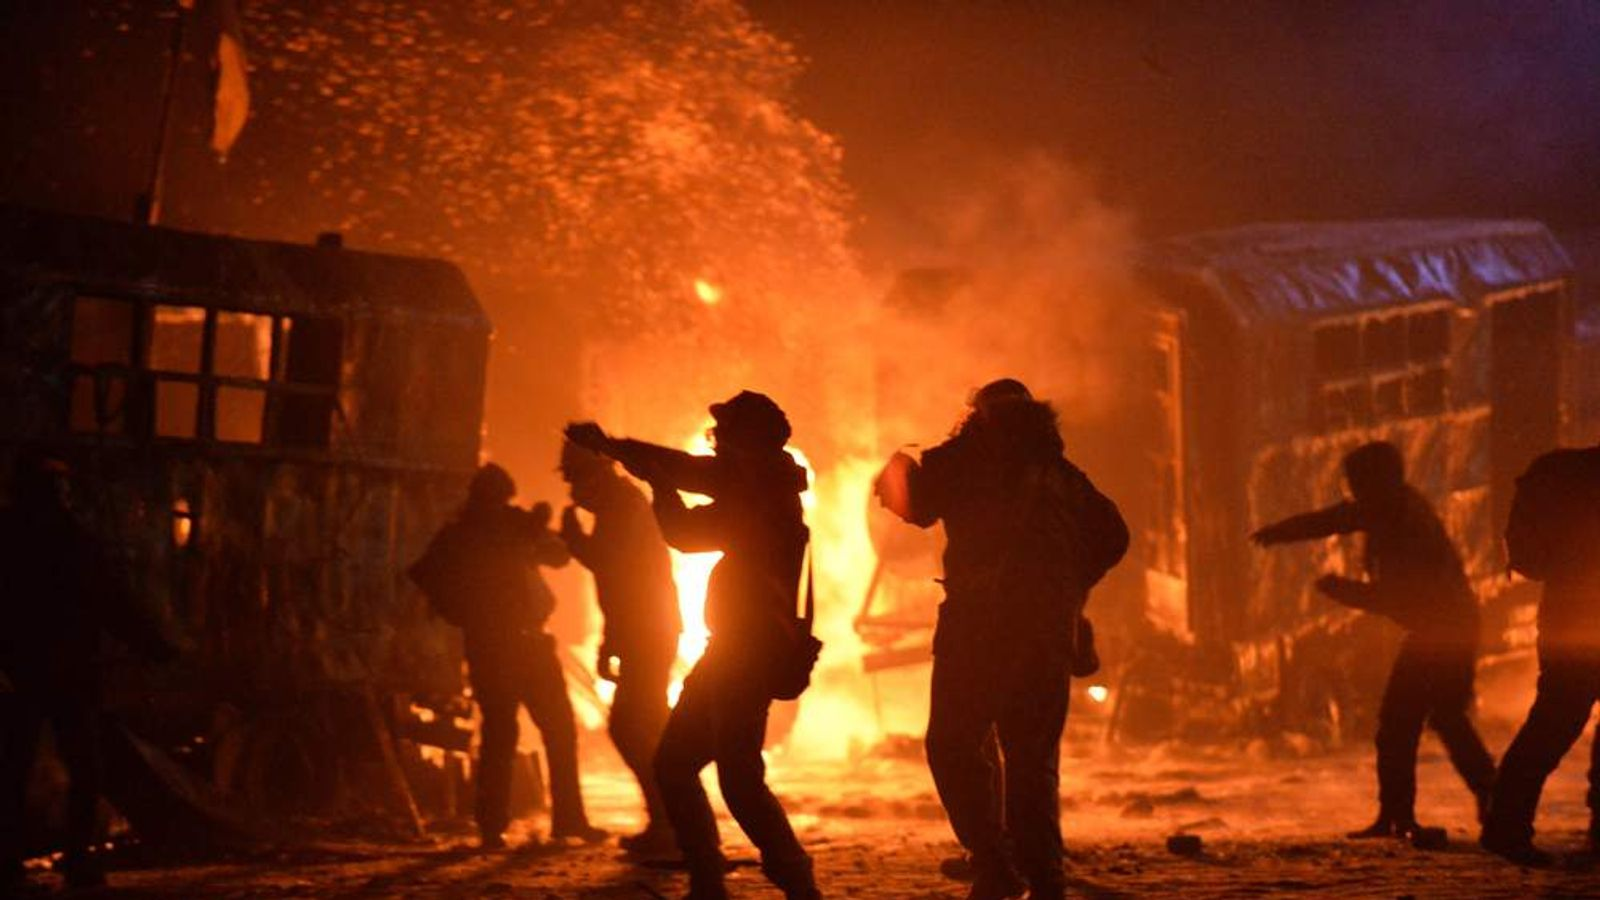 People engulfed in fire in Ukraine